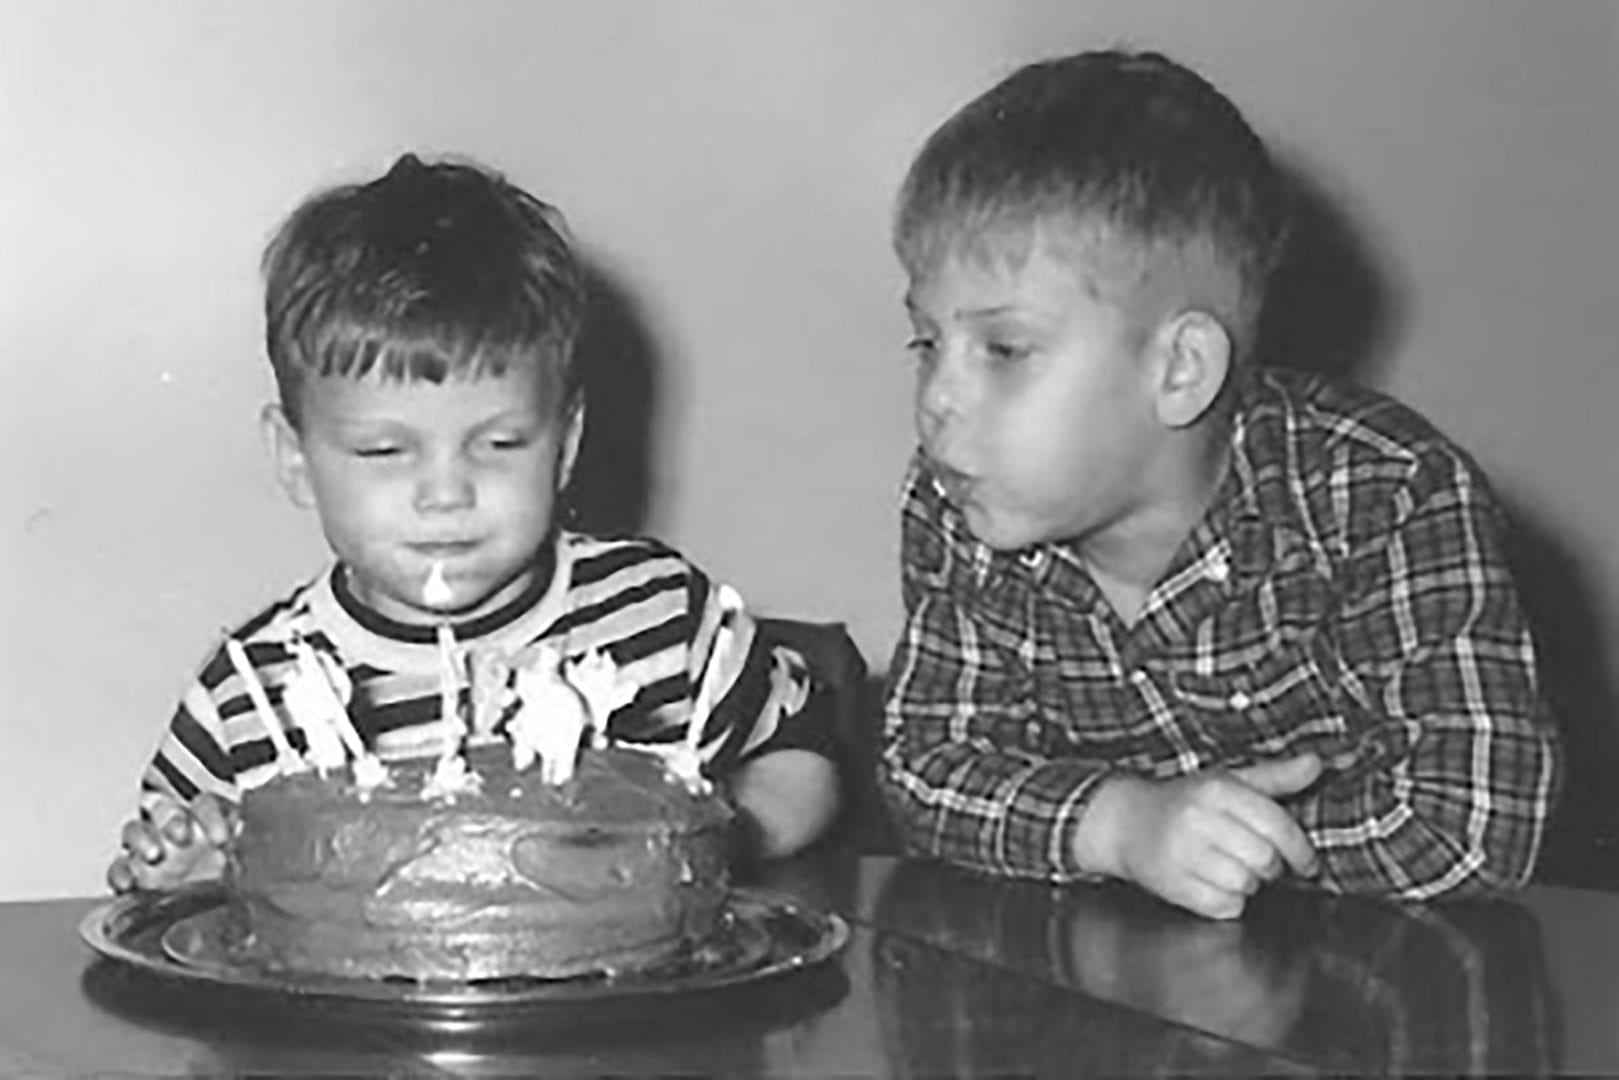 young Dave blowing out birthday cake candles with help of is older brother